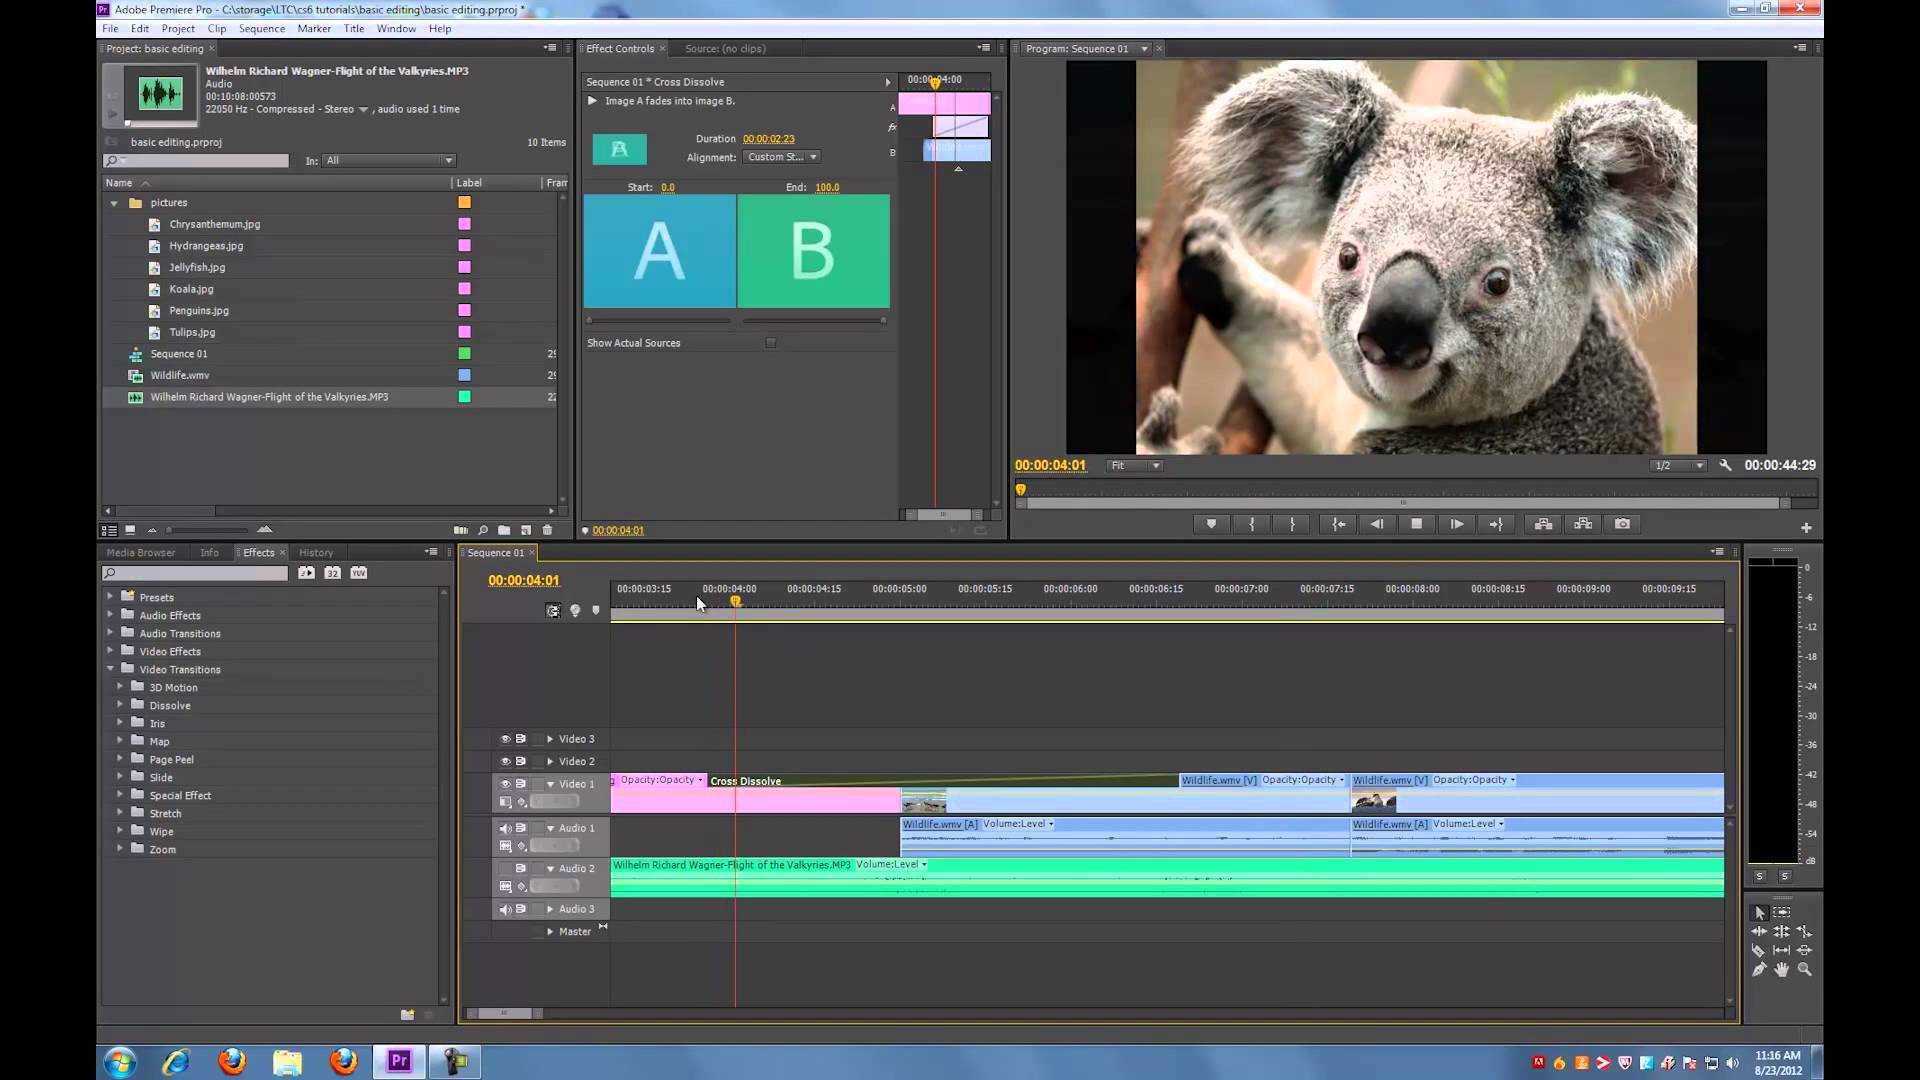 Adobe Premiere Pro CS6 panda film making